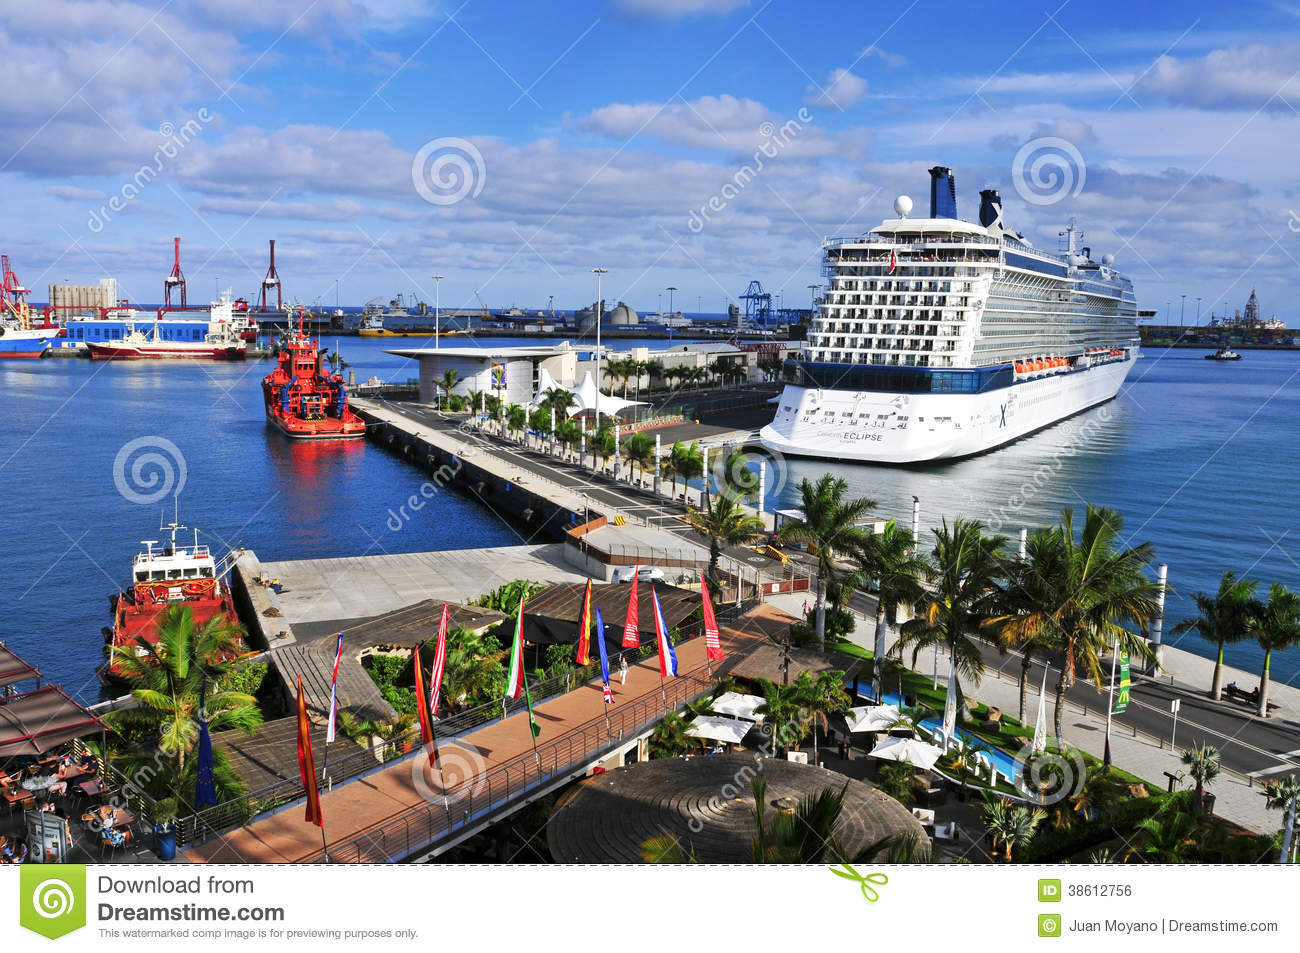 Port of las palmas de gran canaria spain editorial photo image of port place 38612756 - Port of las palmas gran canaria ...